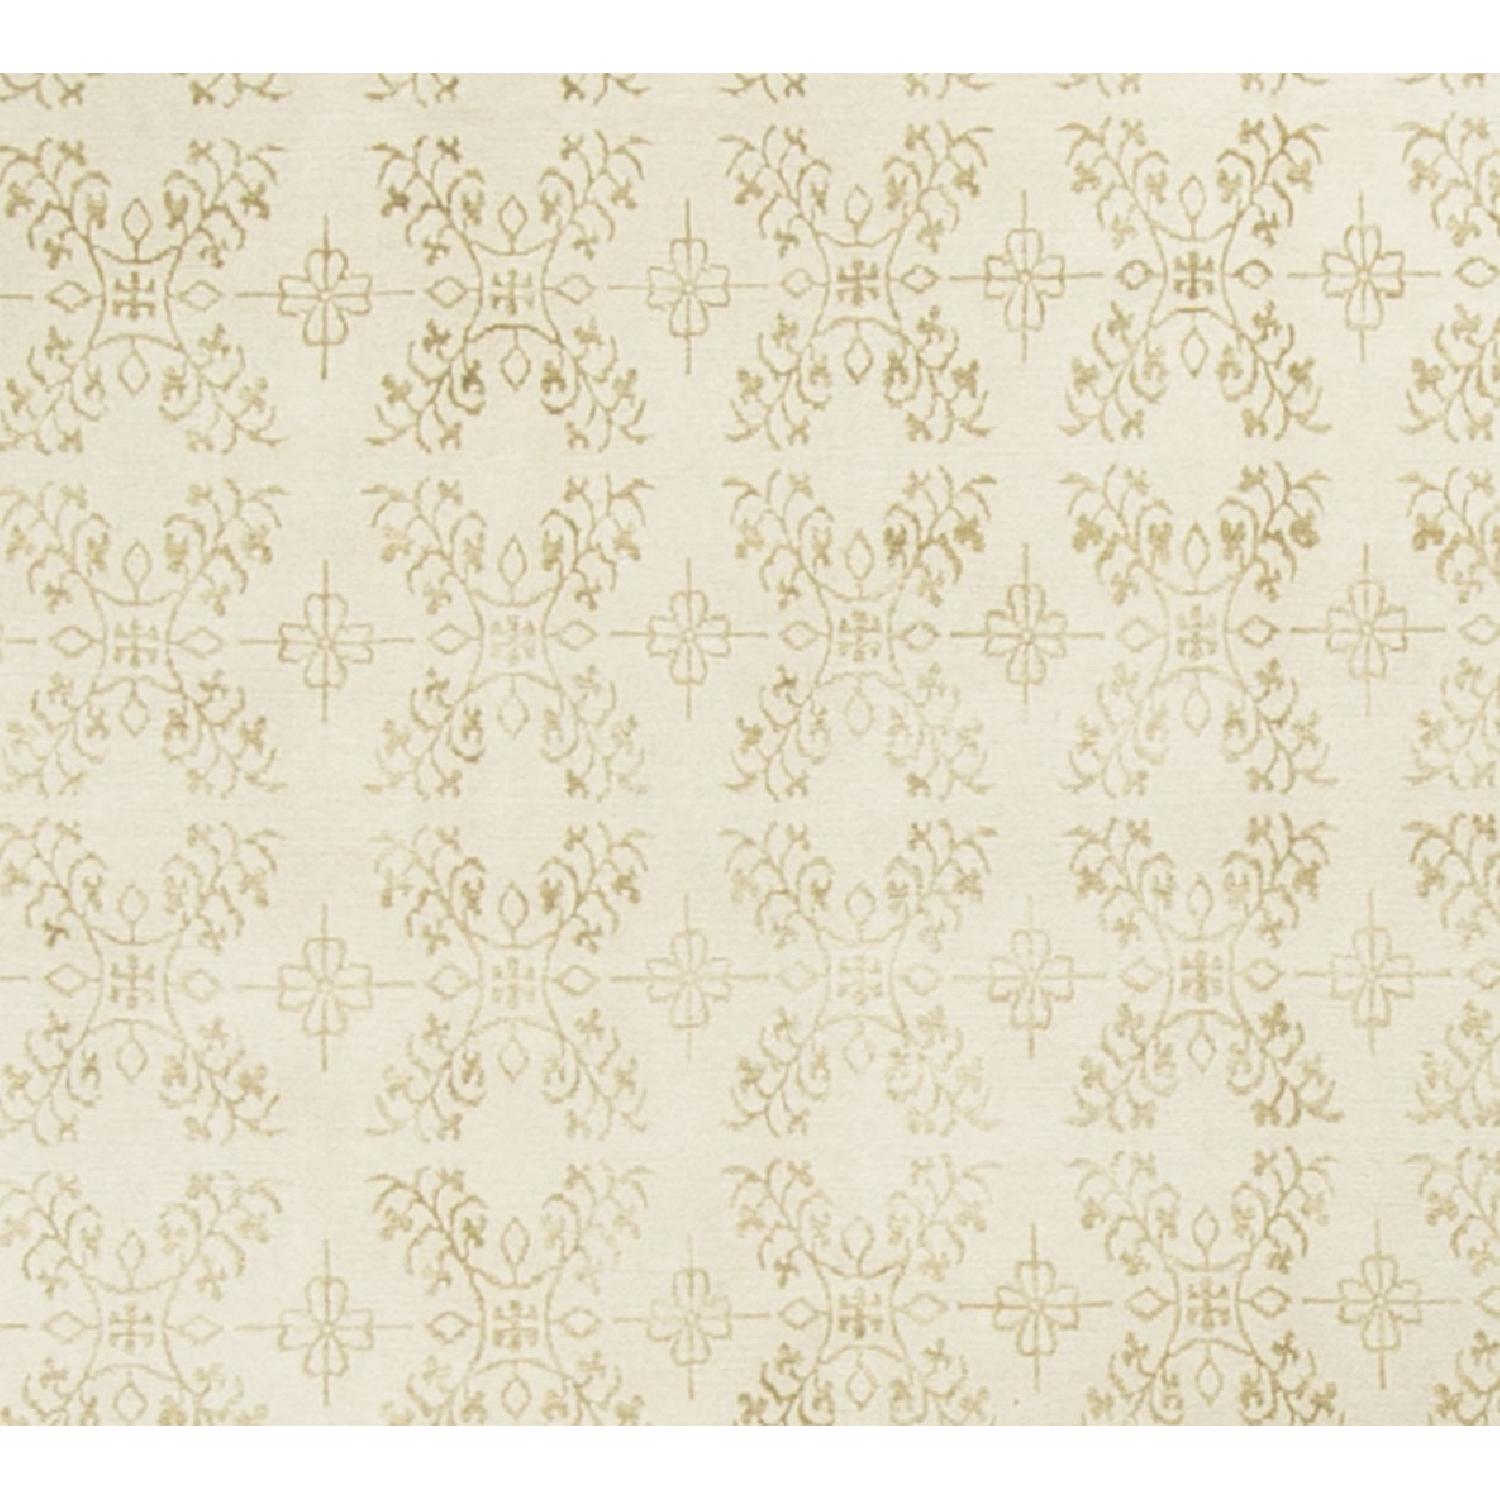 Modern Contemporary Hand Knotted Wool Rug in Ivory - image-2